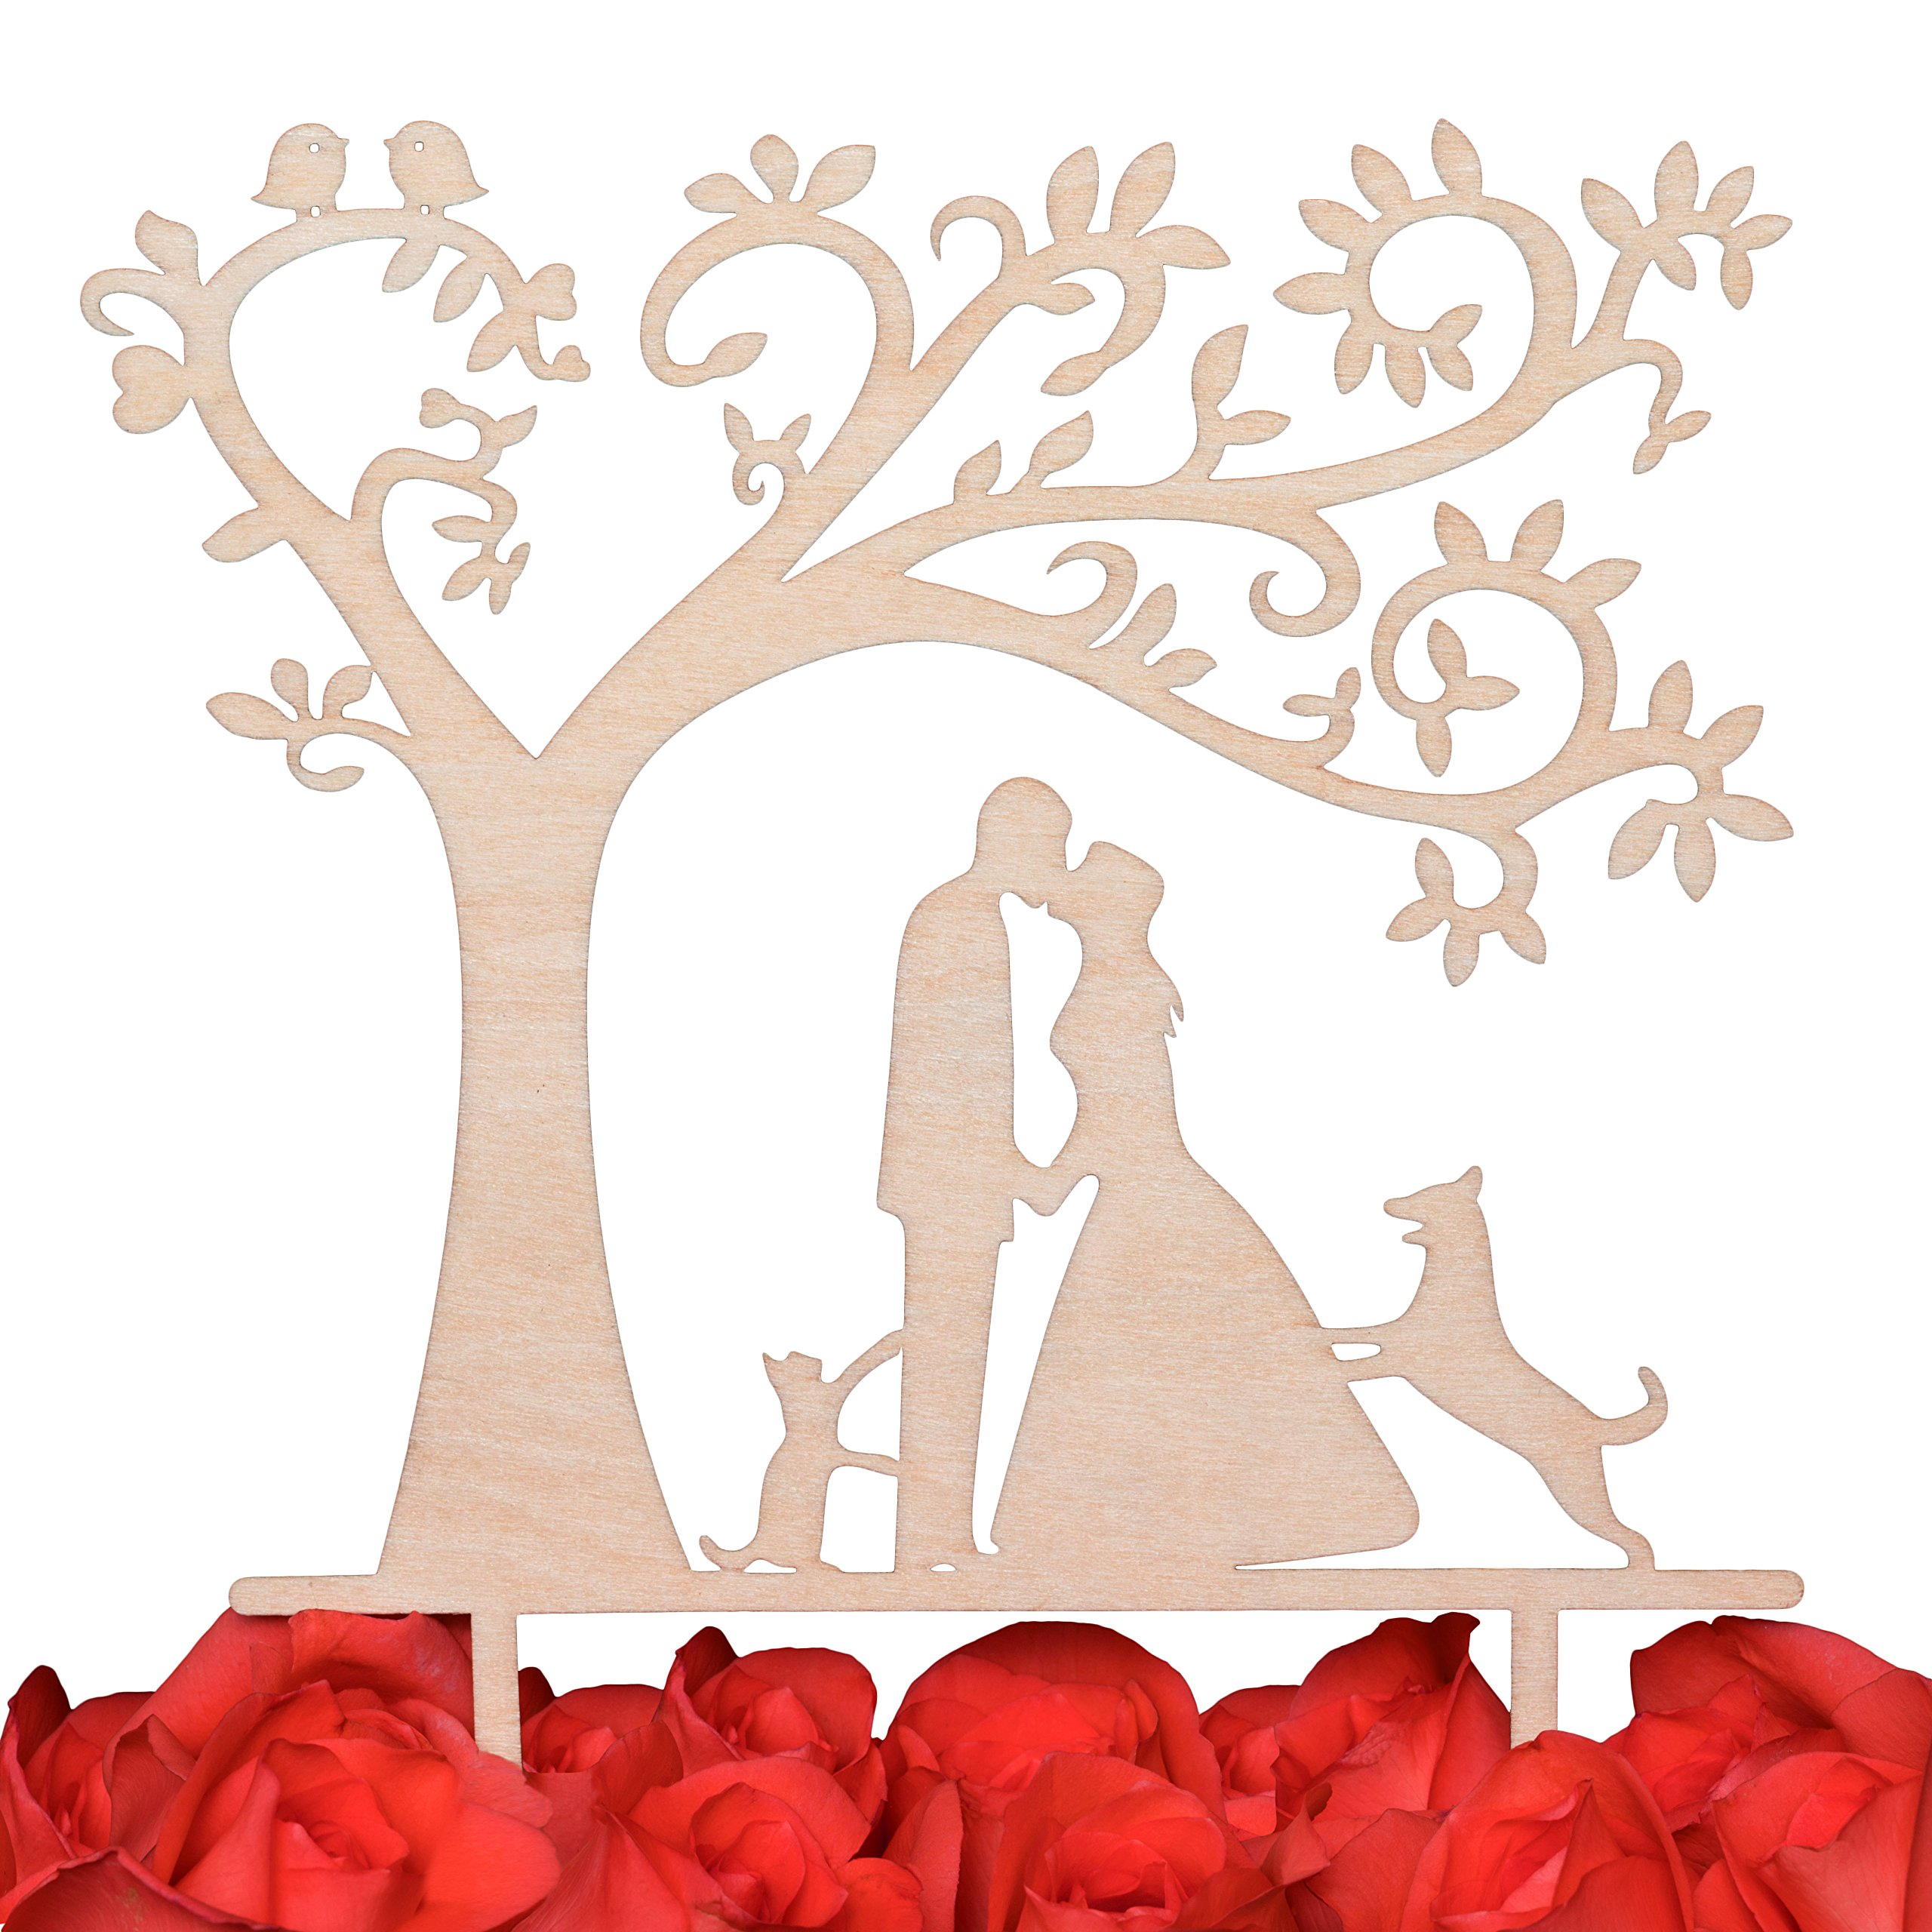 LOVENJOY Gift Box Pack Bride and Groom with Dog and Cat Silhouette Tree Wedding Engagement Cake Topper Rustic Wood (5.3-inch)